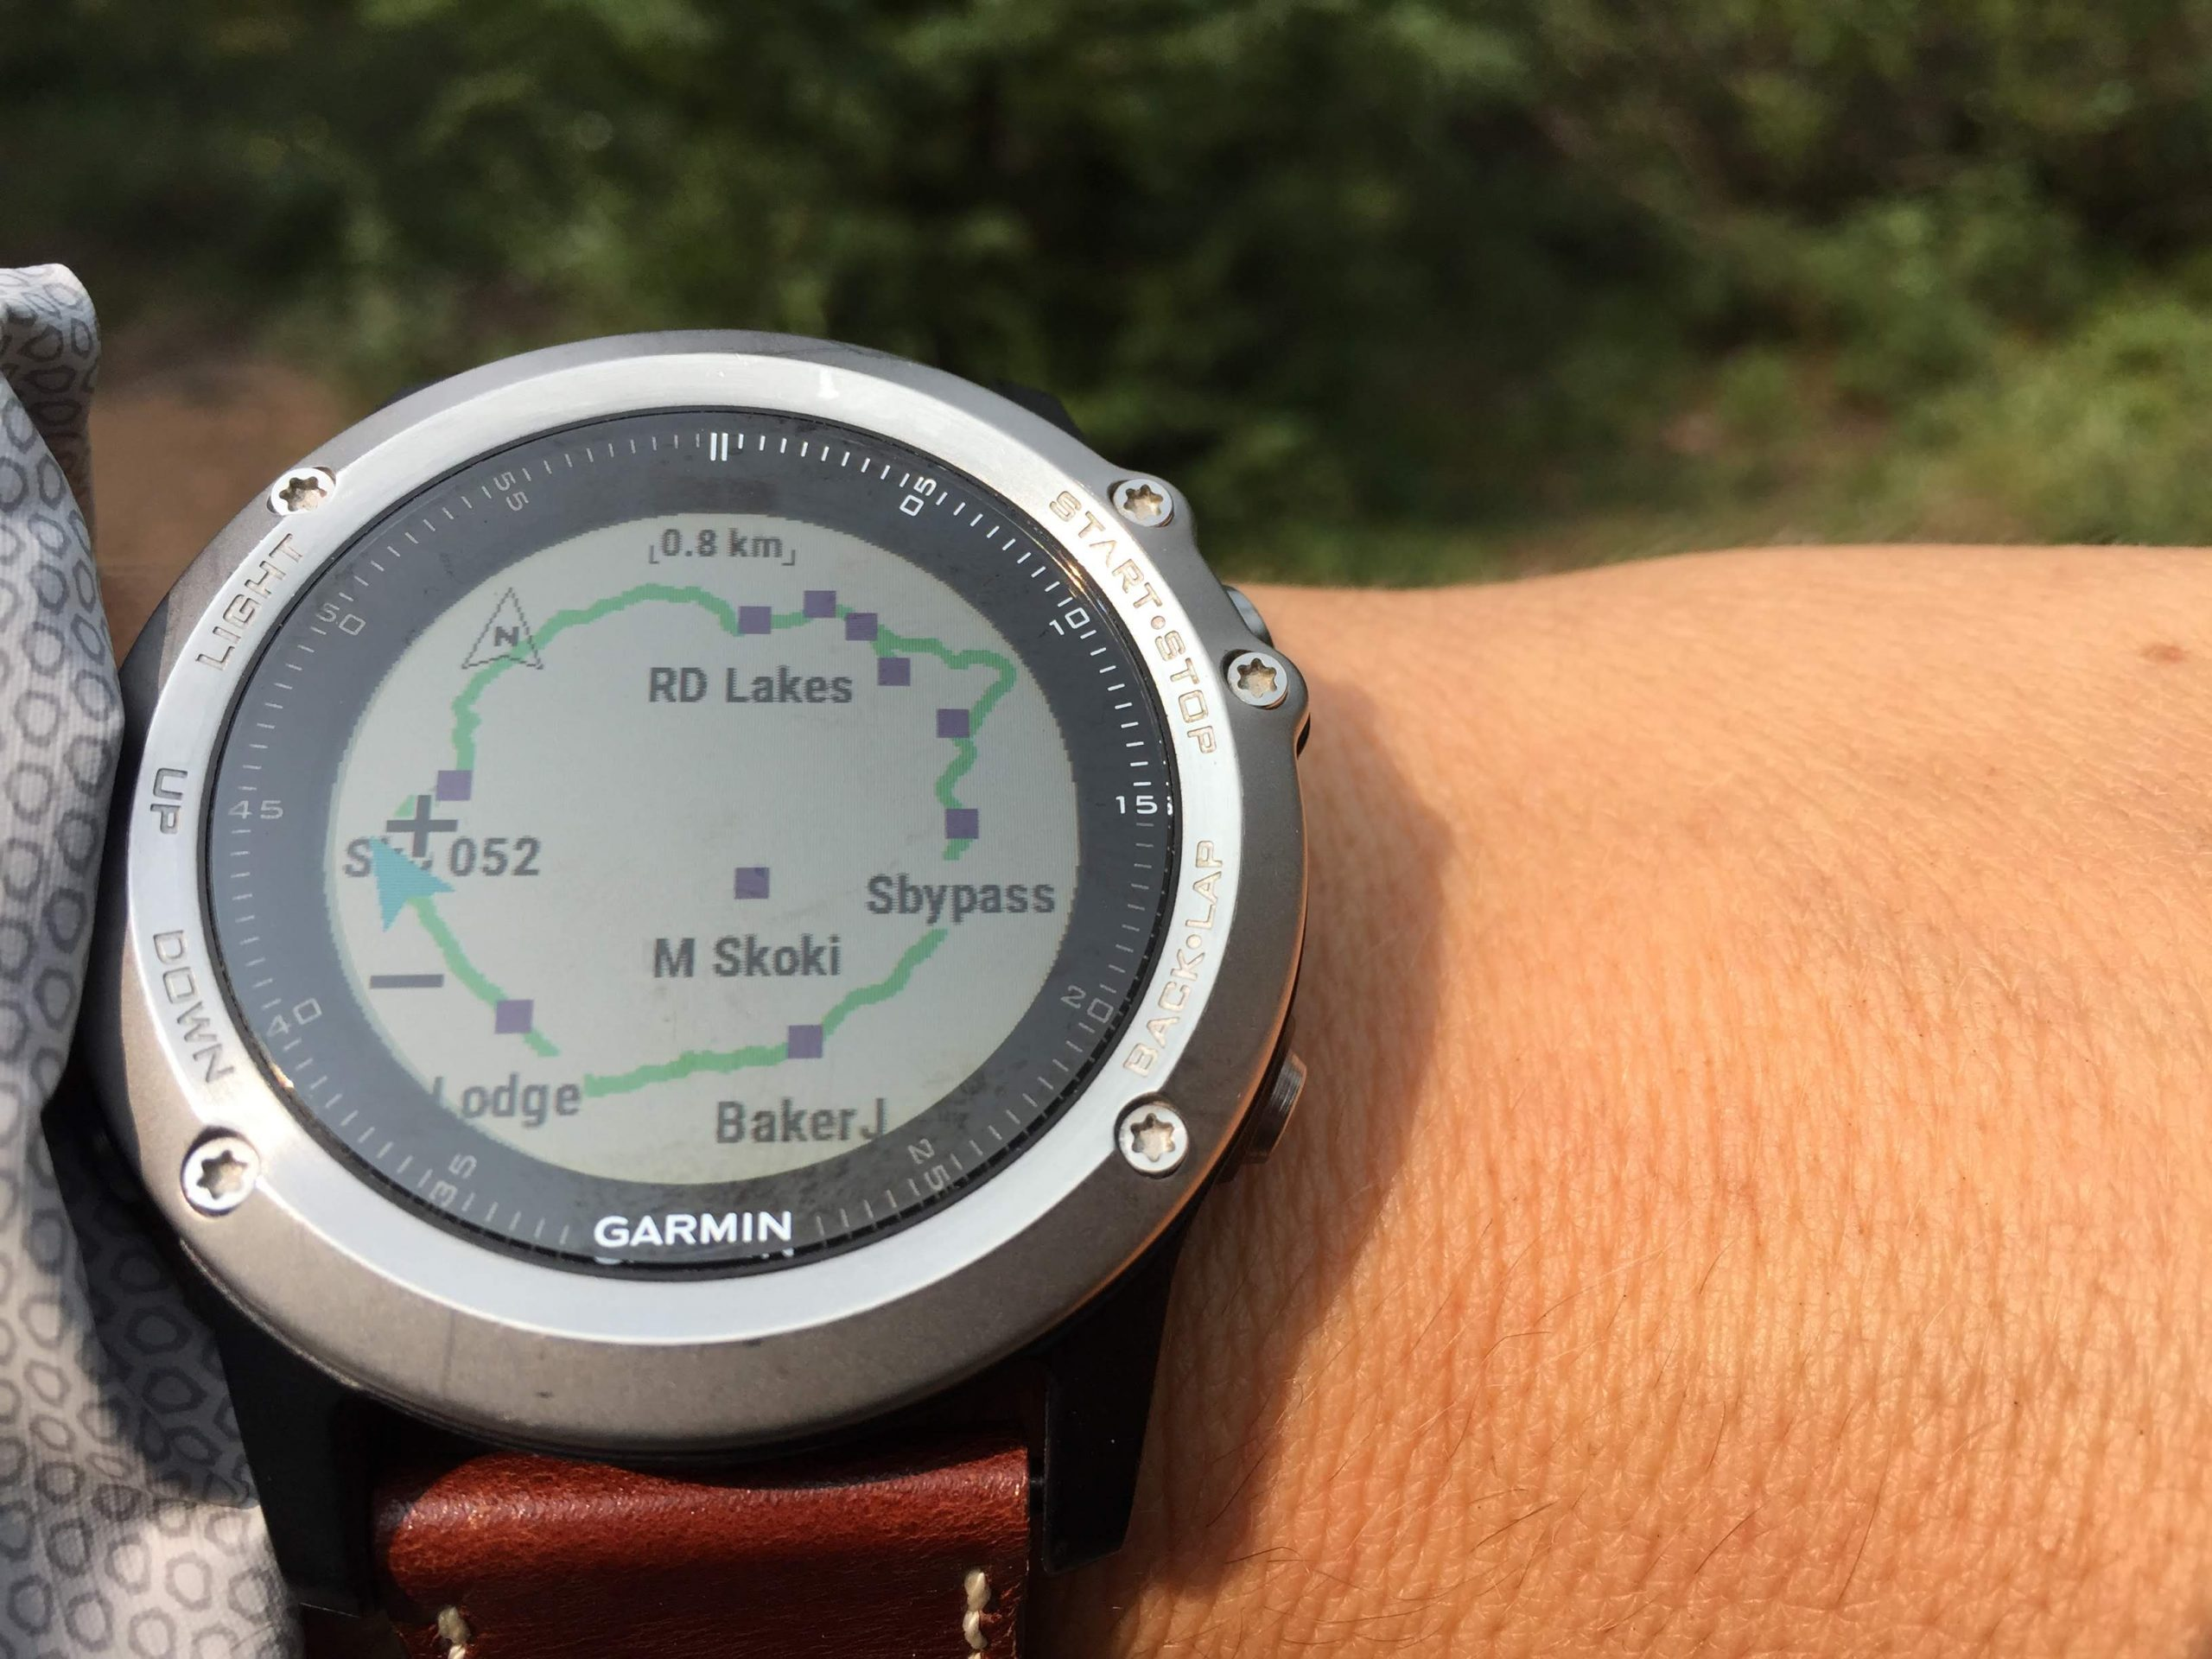 A close-up of a GPS watch showing waypoints on a map.